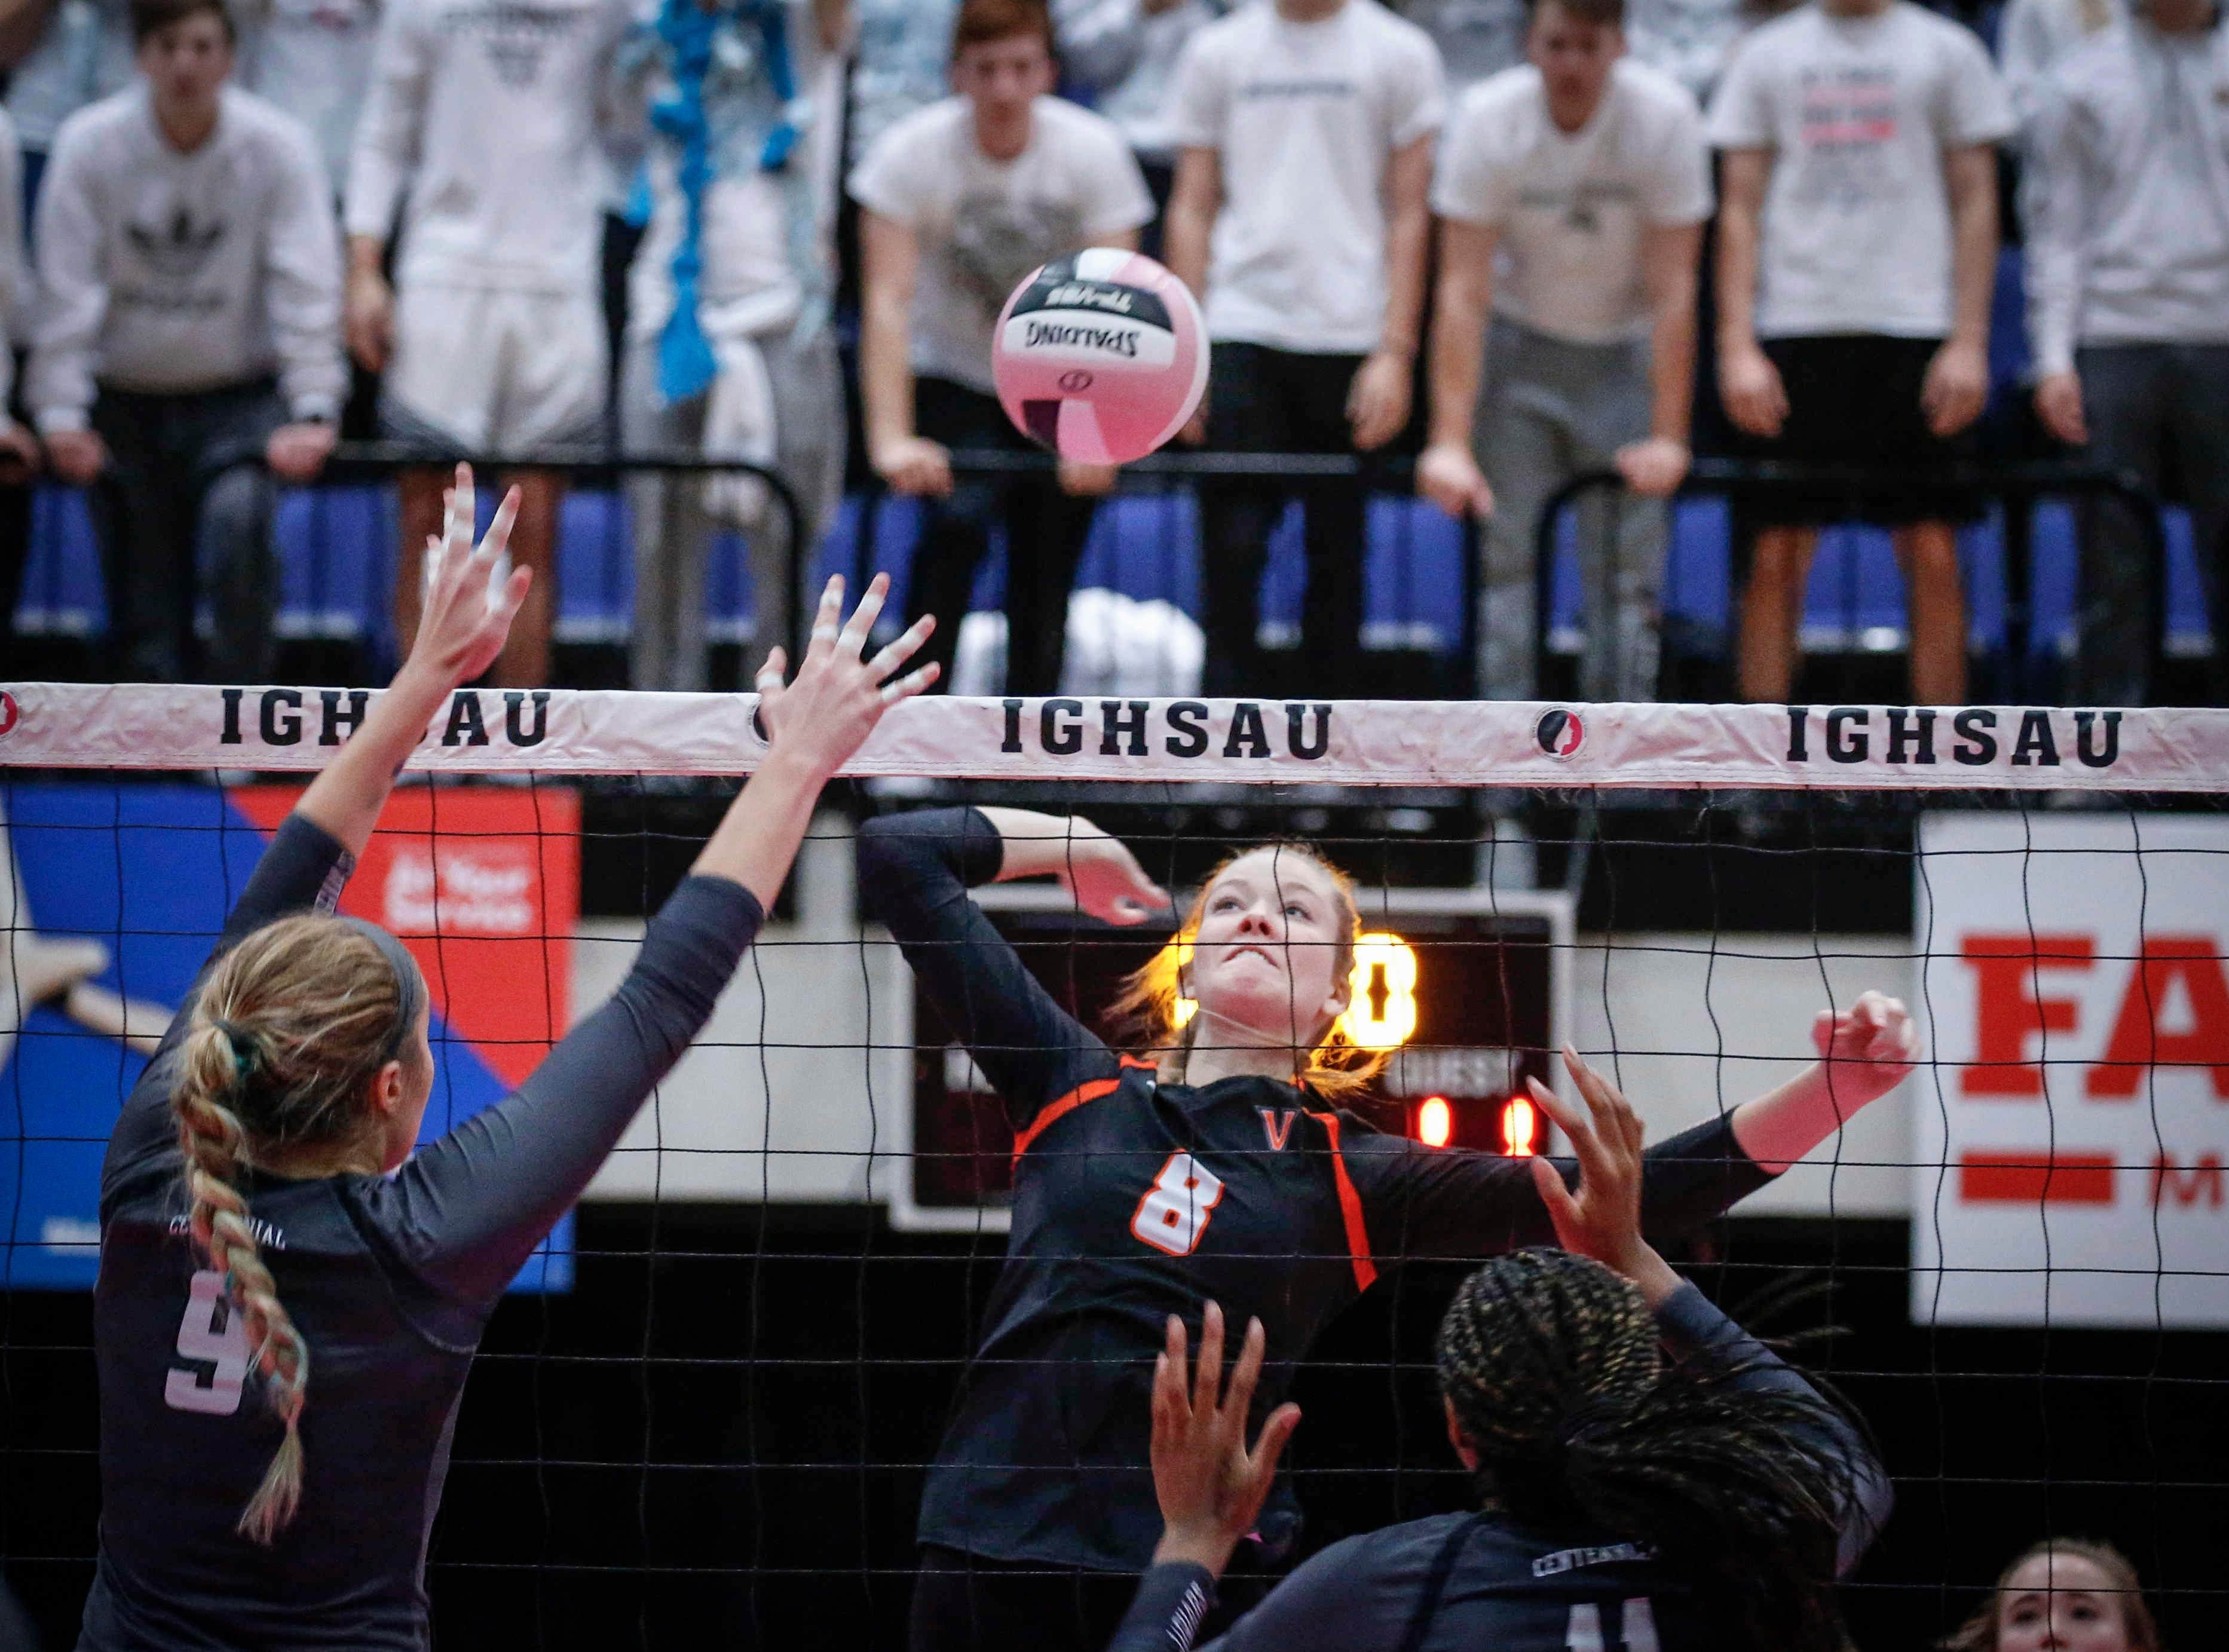 West Des Moines Valley's Allison Blythe hits the ball over the net against Ankeny Centennial during the 2018 Iowa High School state volleyball tournament on Thursday, Nov. 8, 2018, in Cedar Rapids.